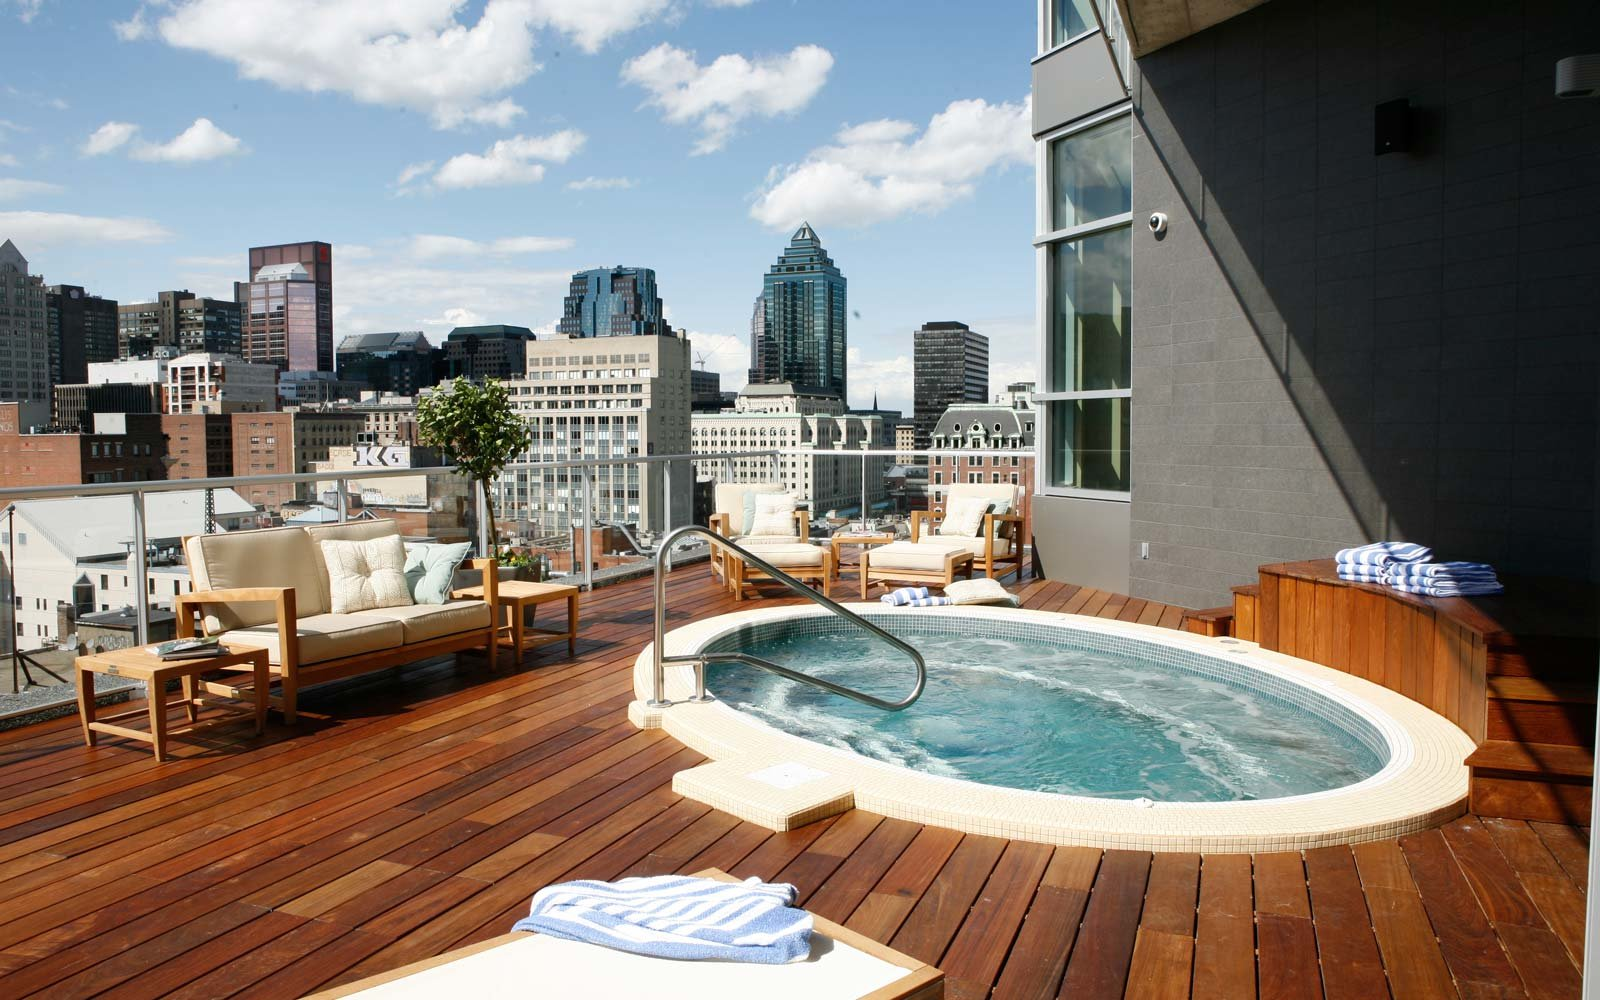 Jacuzzi Pool Hotel Room 25 Rooftop Pools To Dream About While You Sit In The